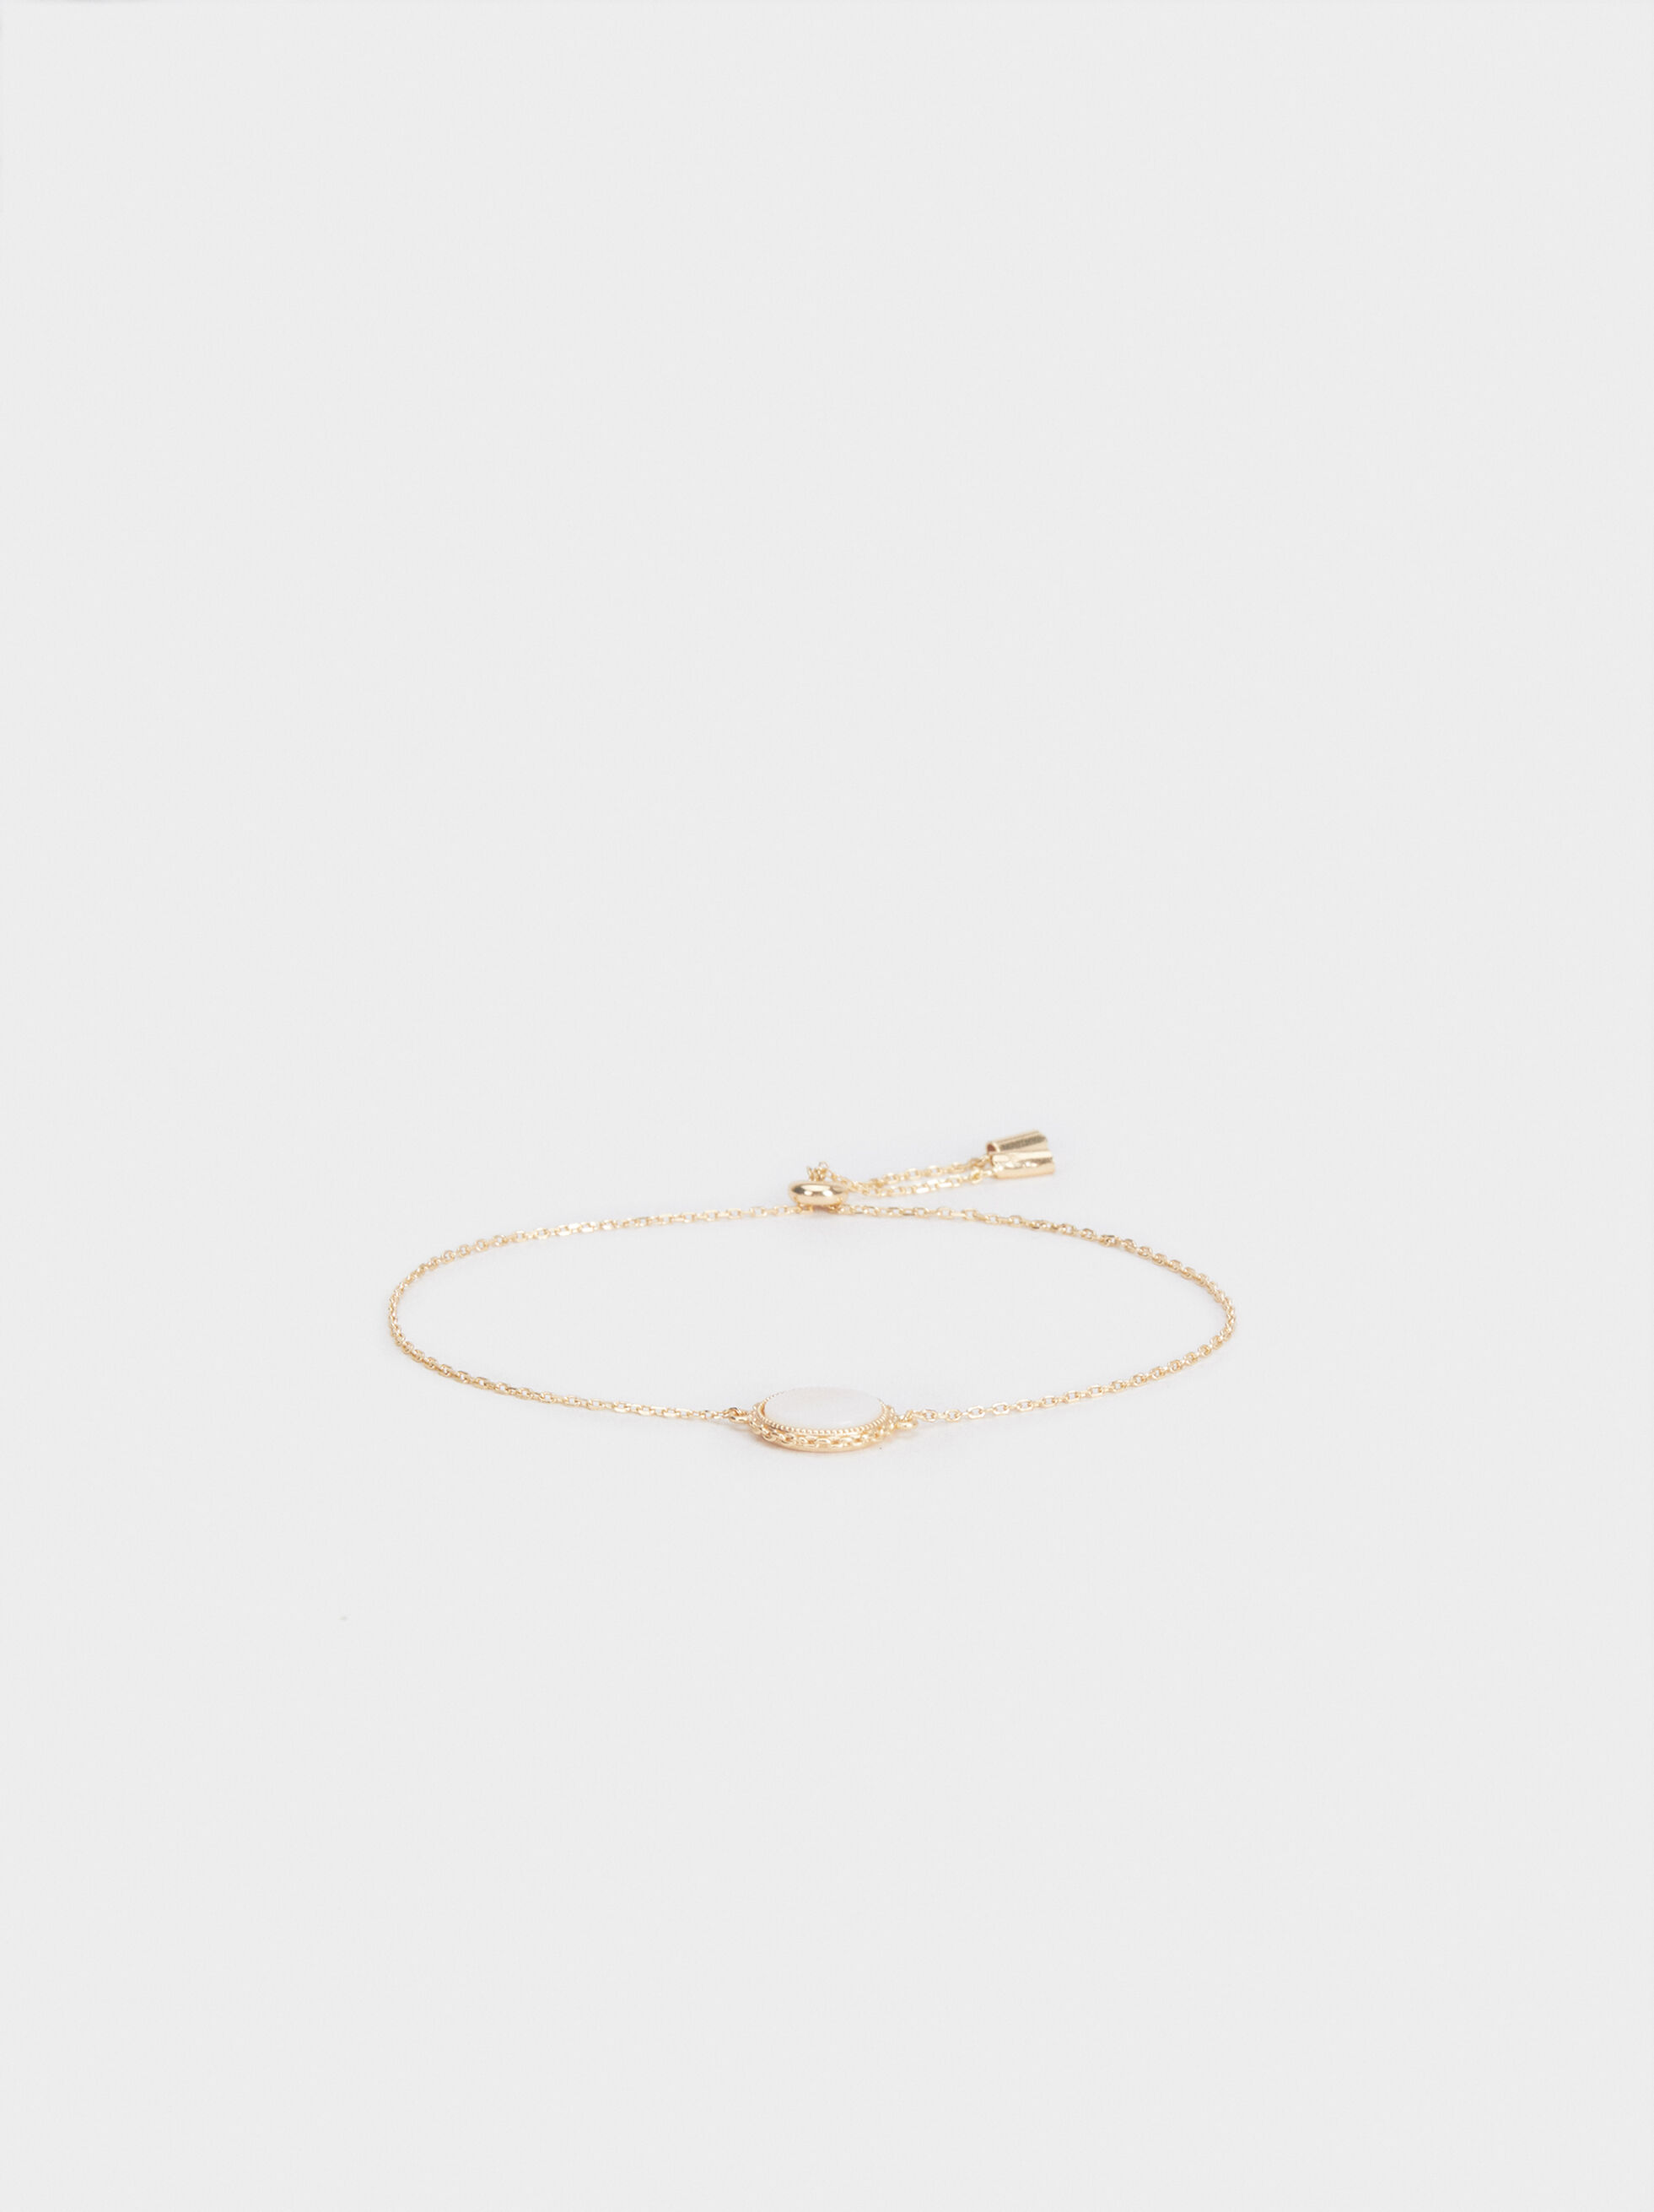 Adjustable 925 Silver Bracelet , Beige, hi-res